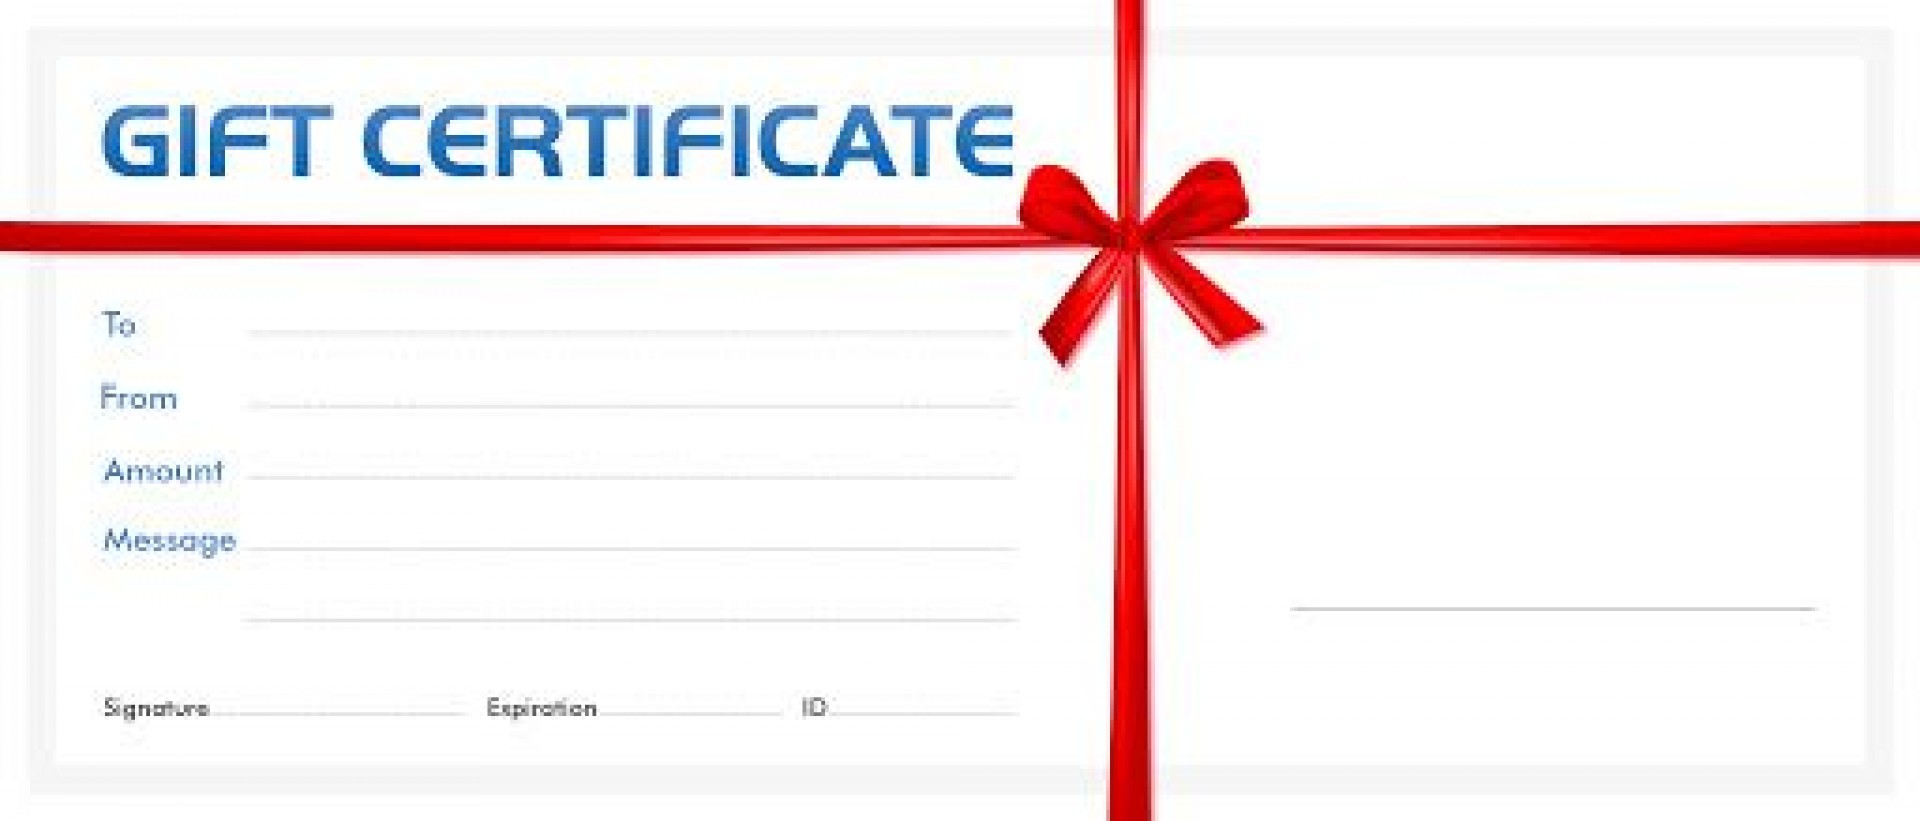 007 Phenomenal Blank Gift Certificate Template Photo  Free Printable Downloadable1920